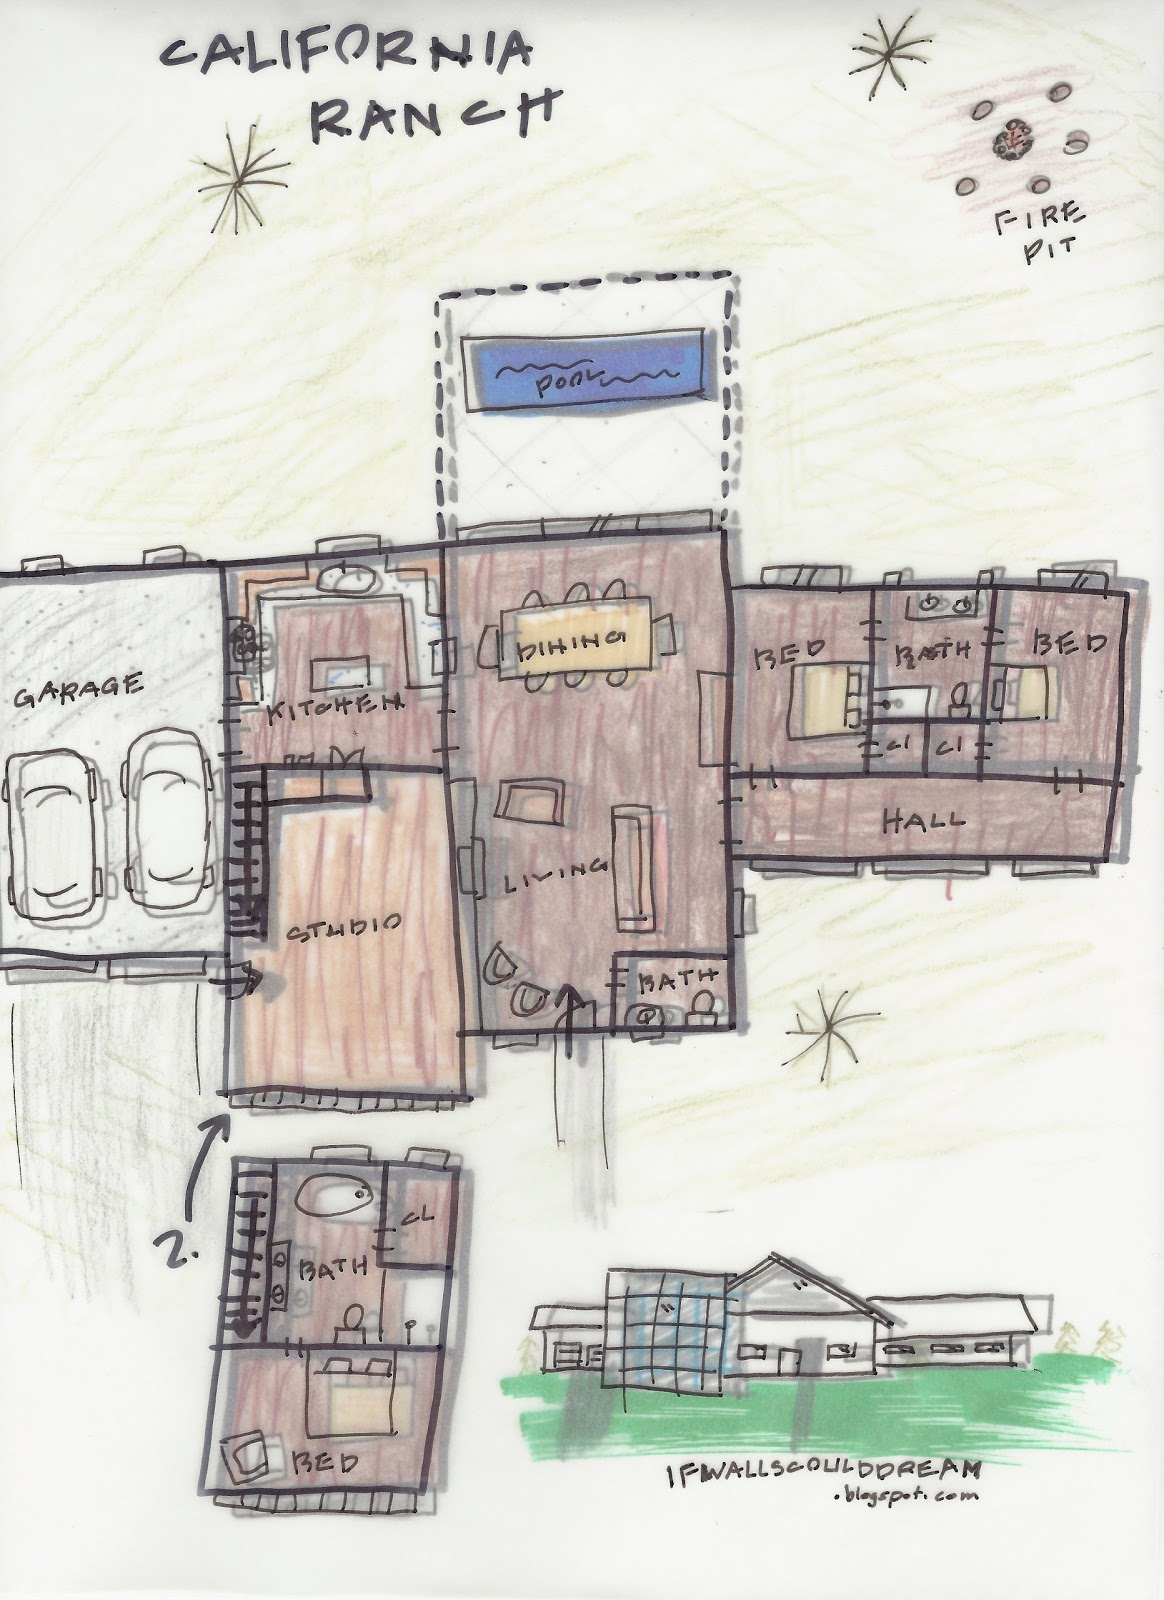 If Walls Could Dream California Ranch Floor Plan Sketch